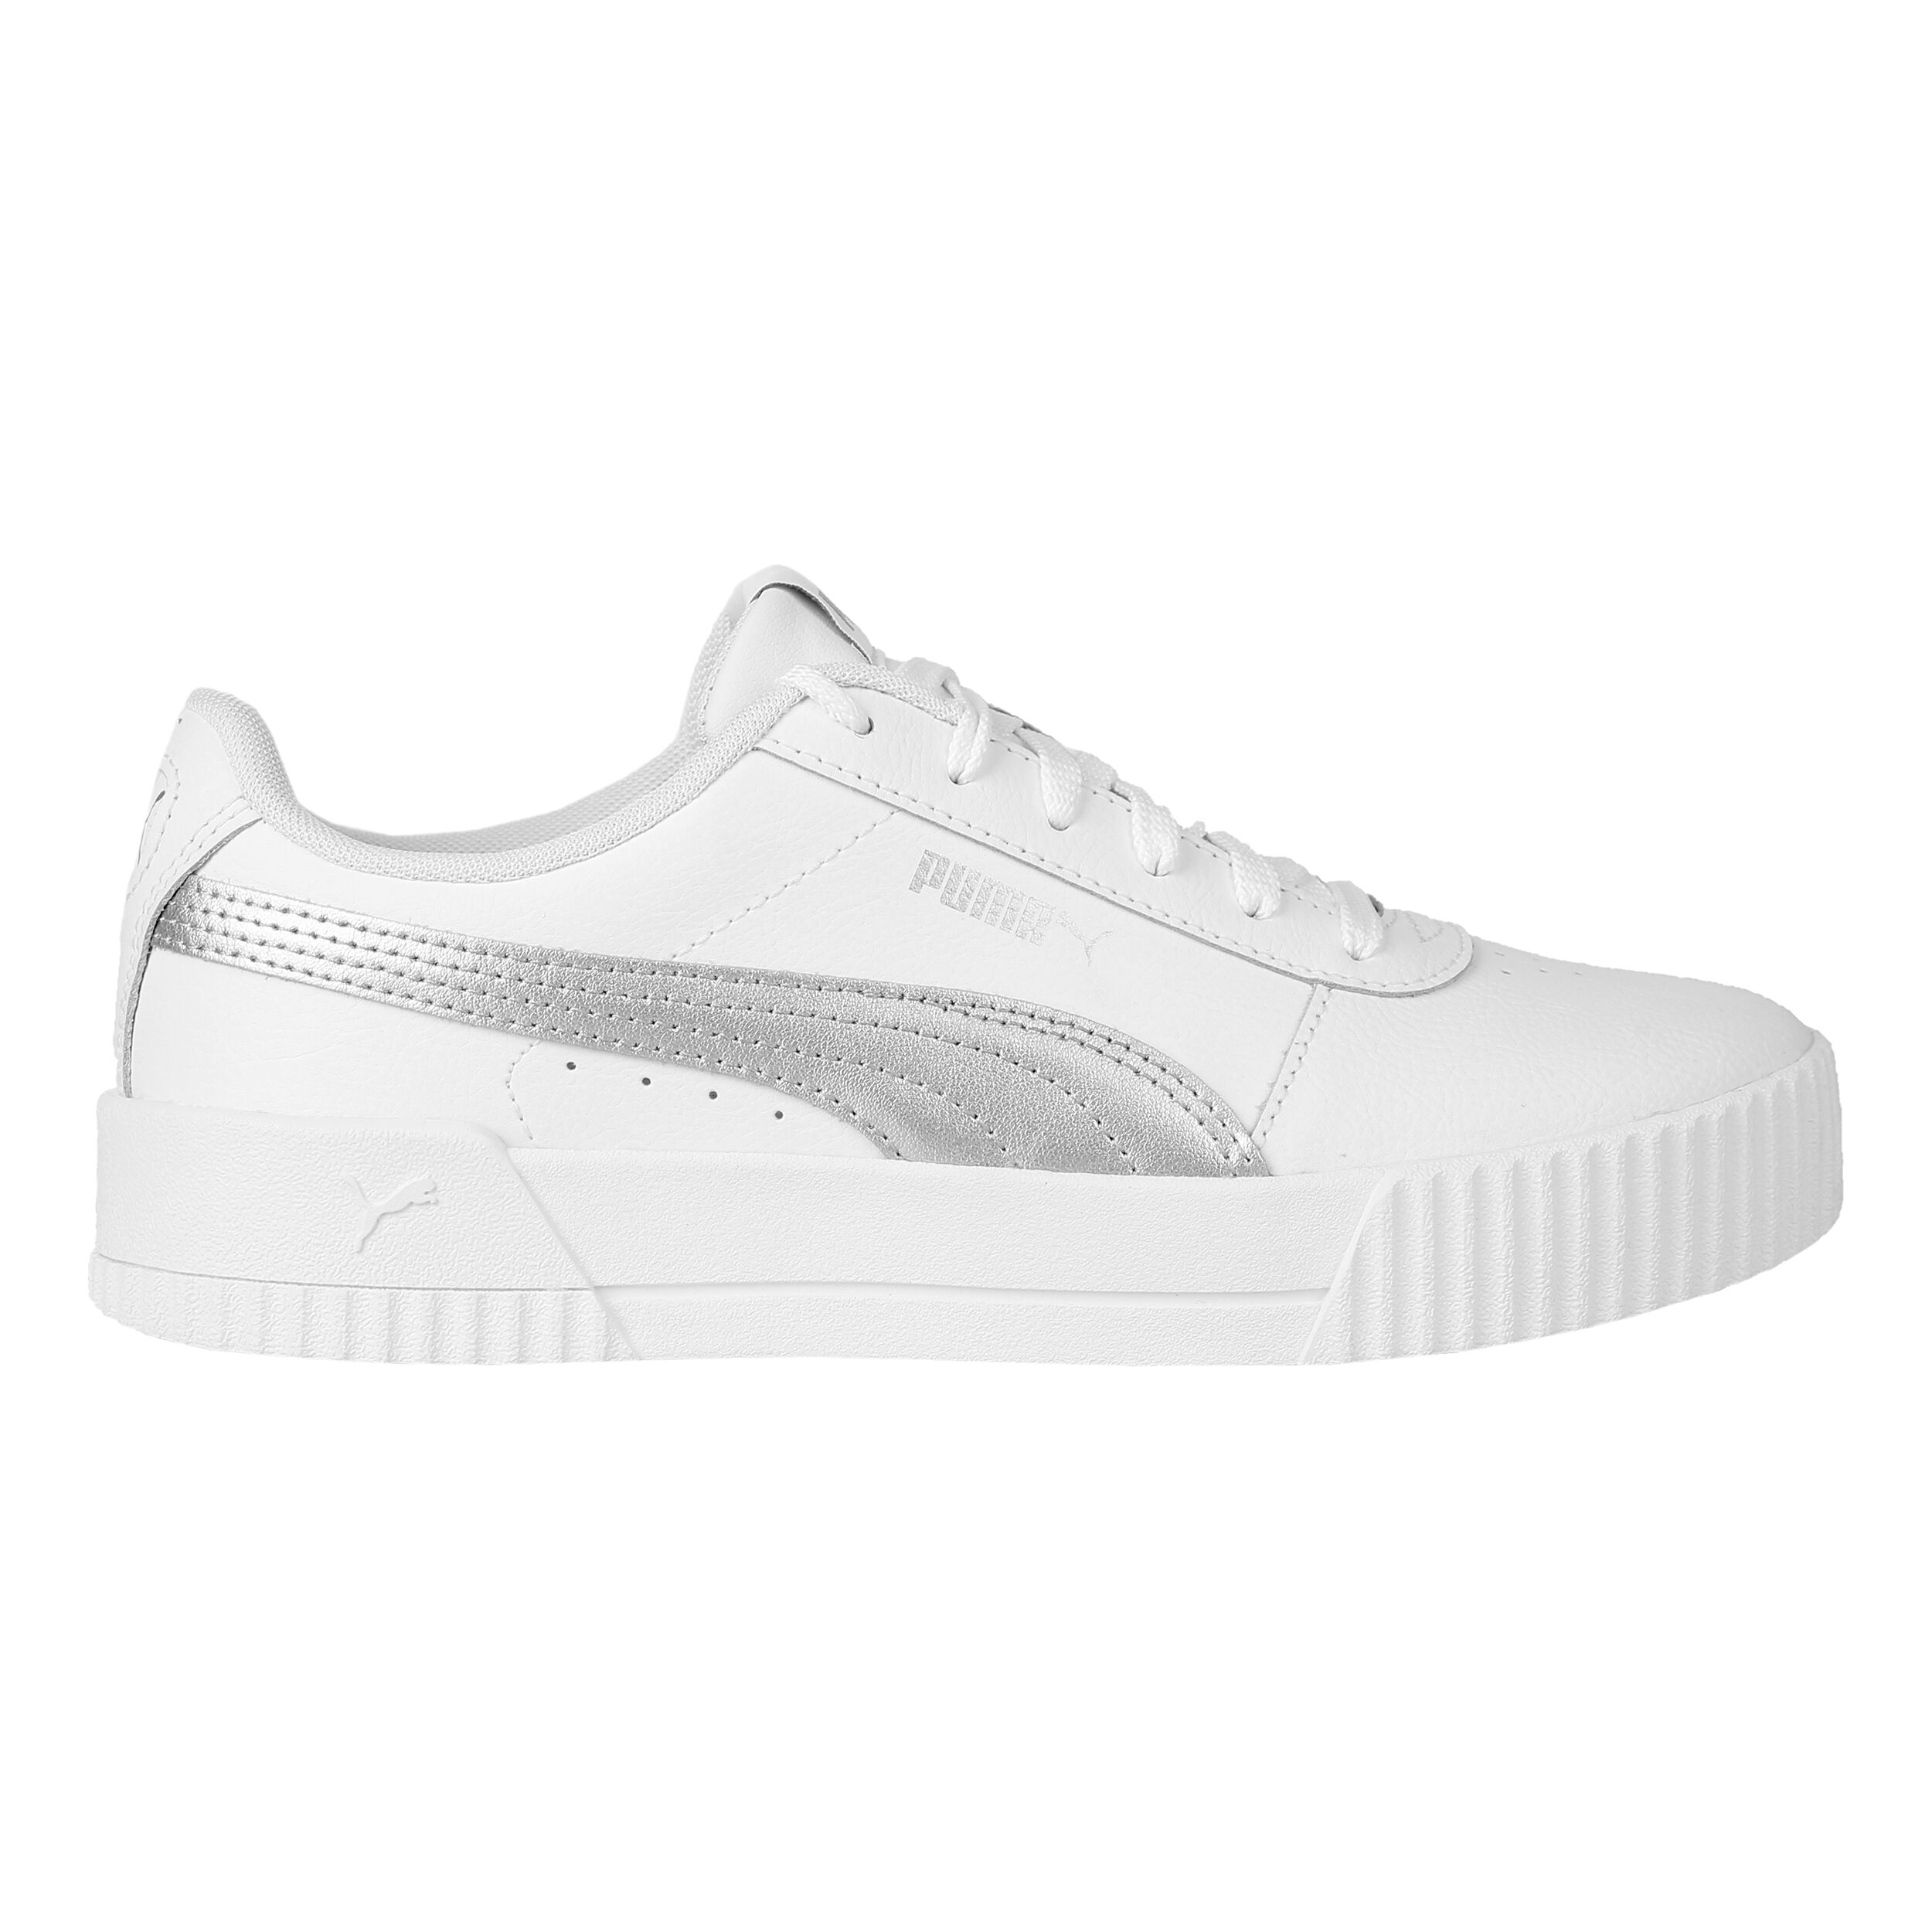 Buy Tennis shoes from Puma online   Tennis-Point